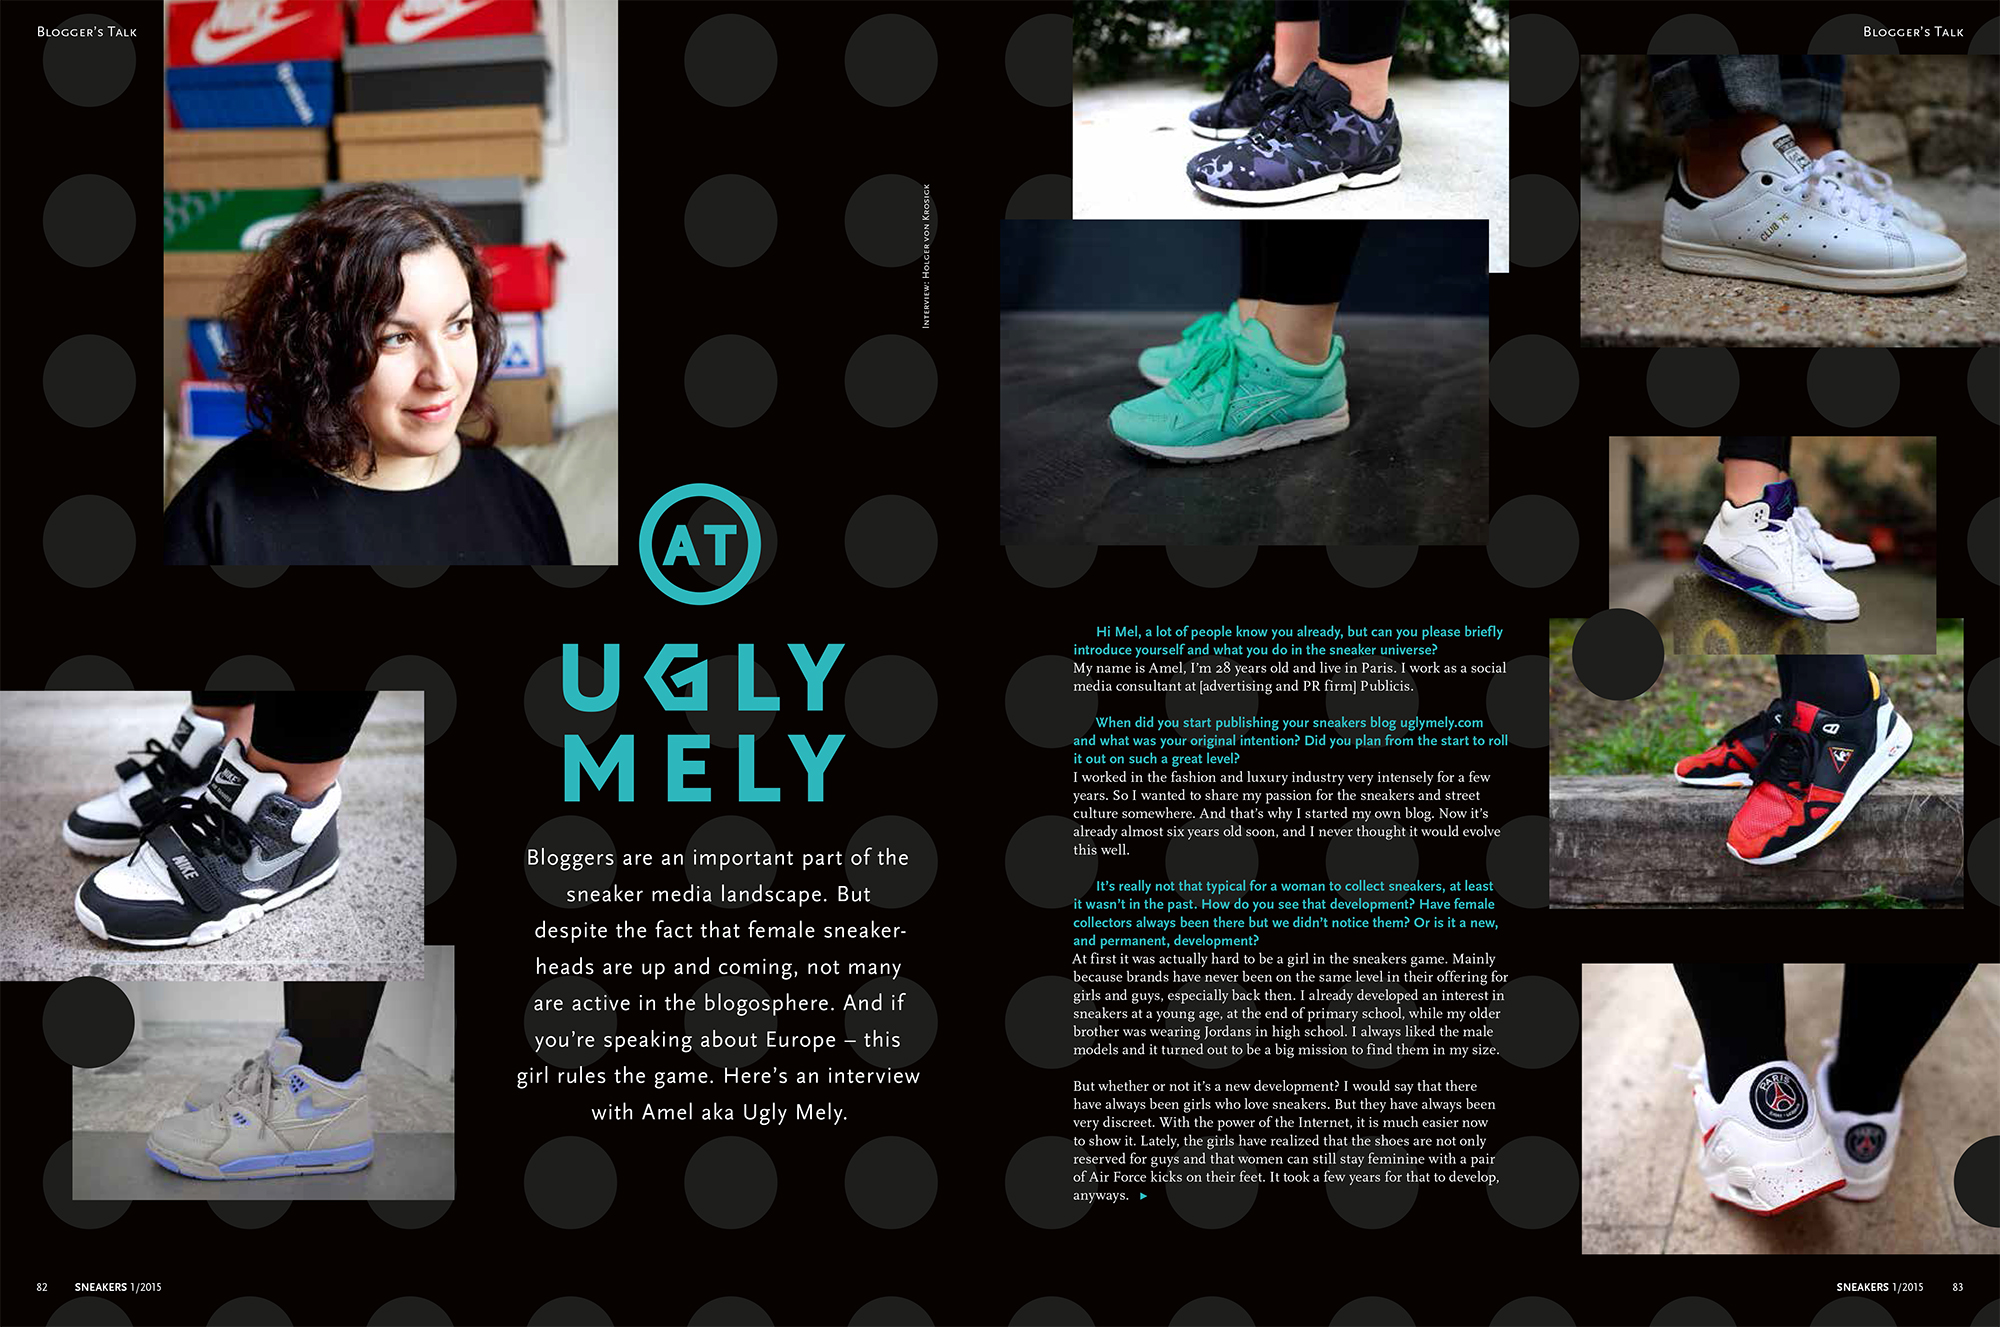 S000_000_LAY_sneakers26_Mely-1